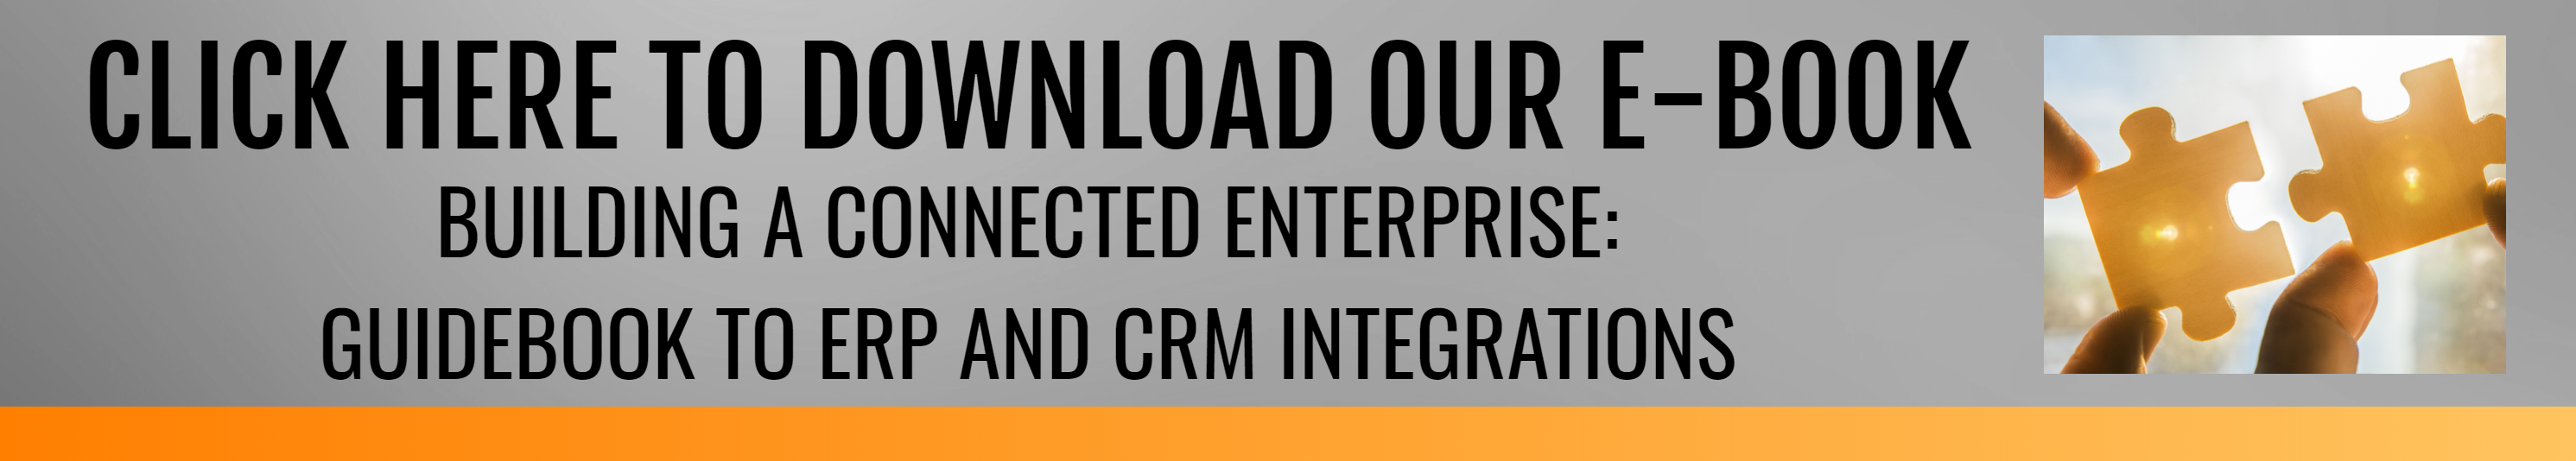 ERP CRM Integration E-Book